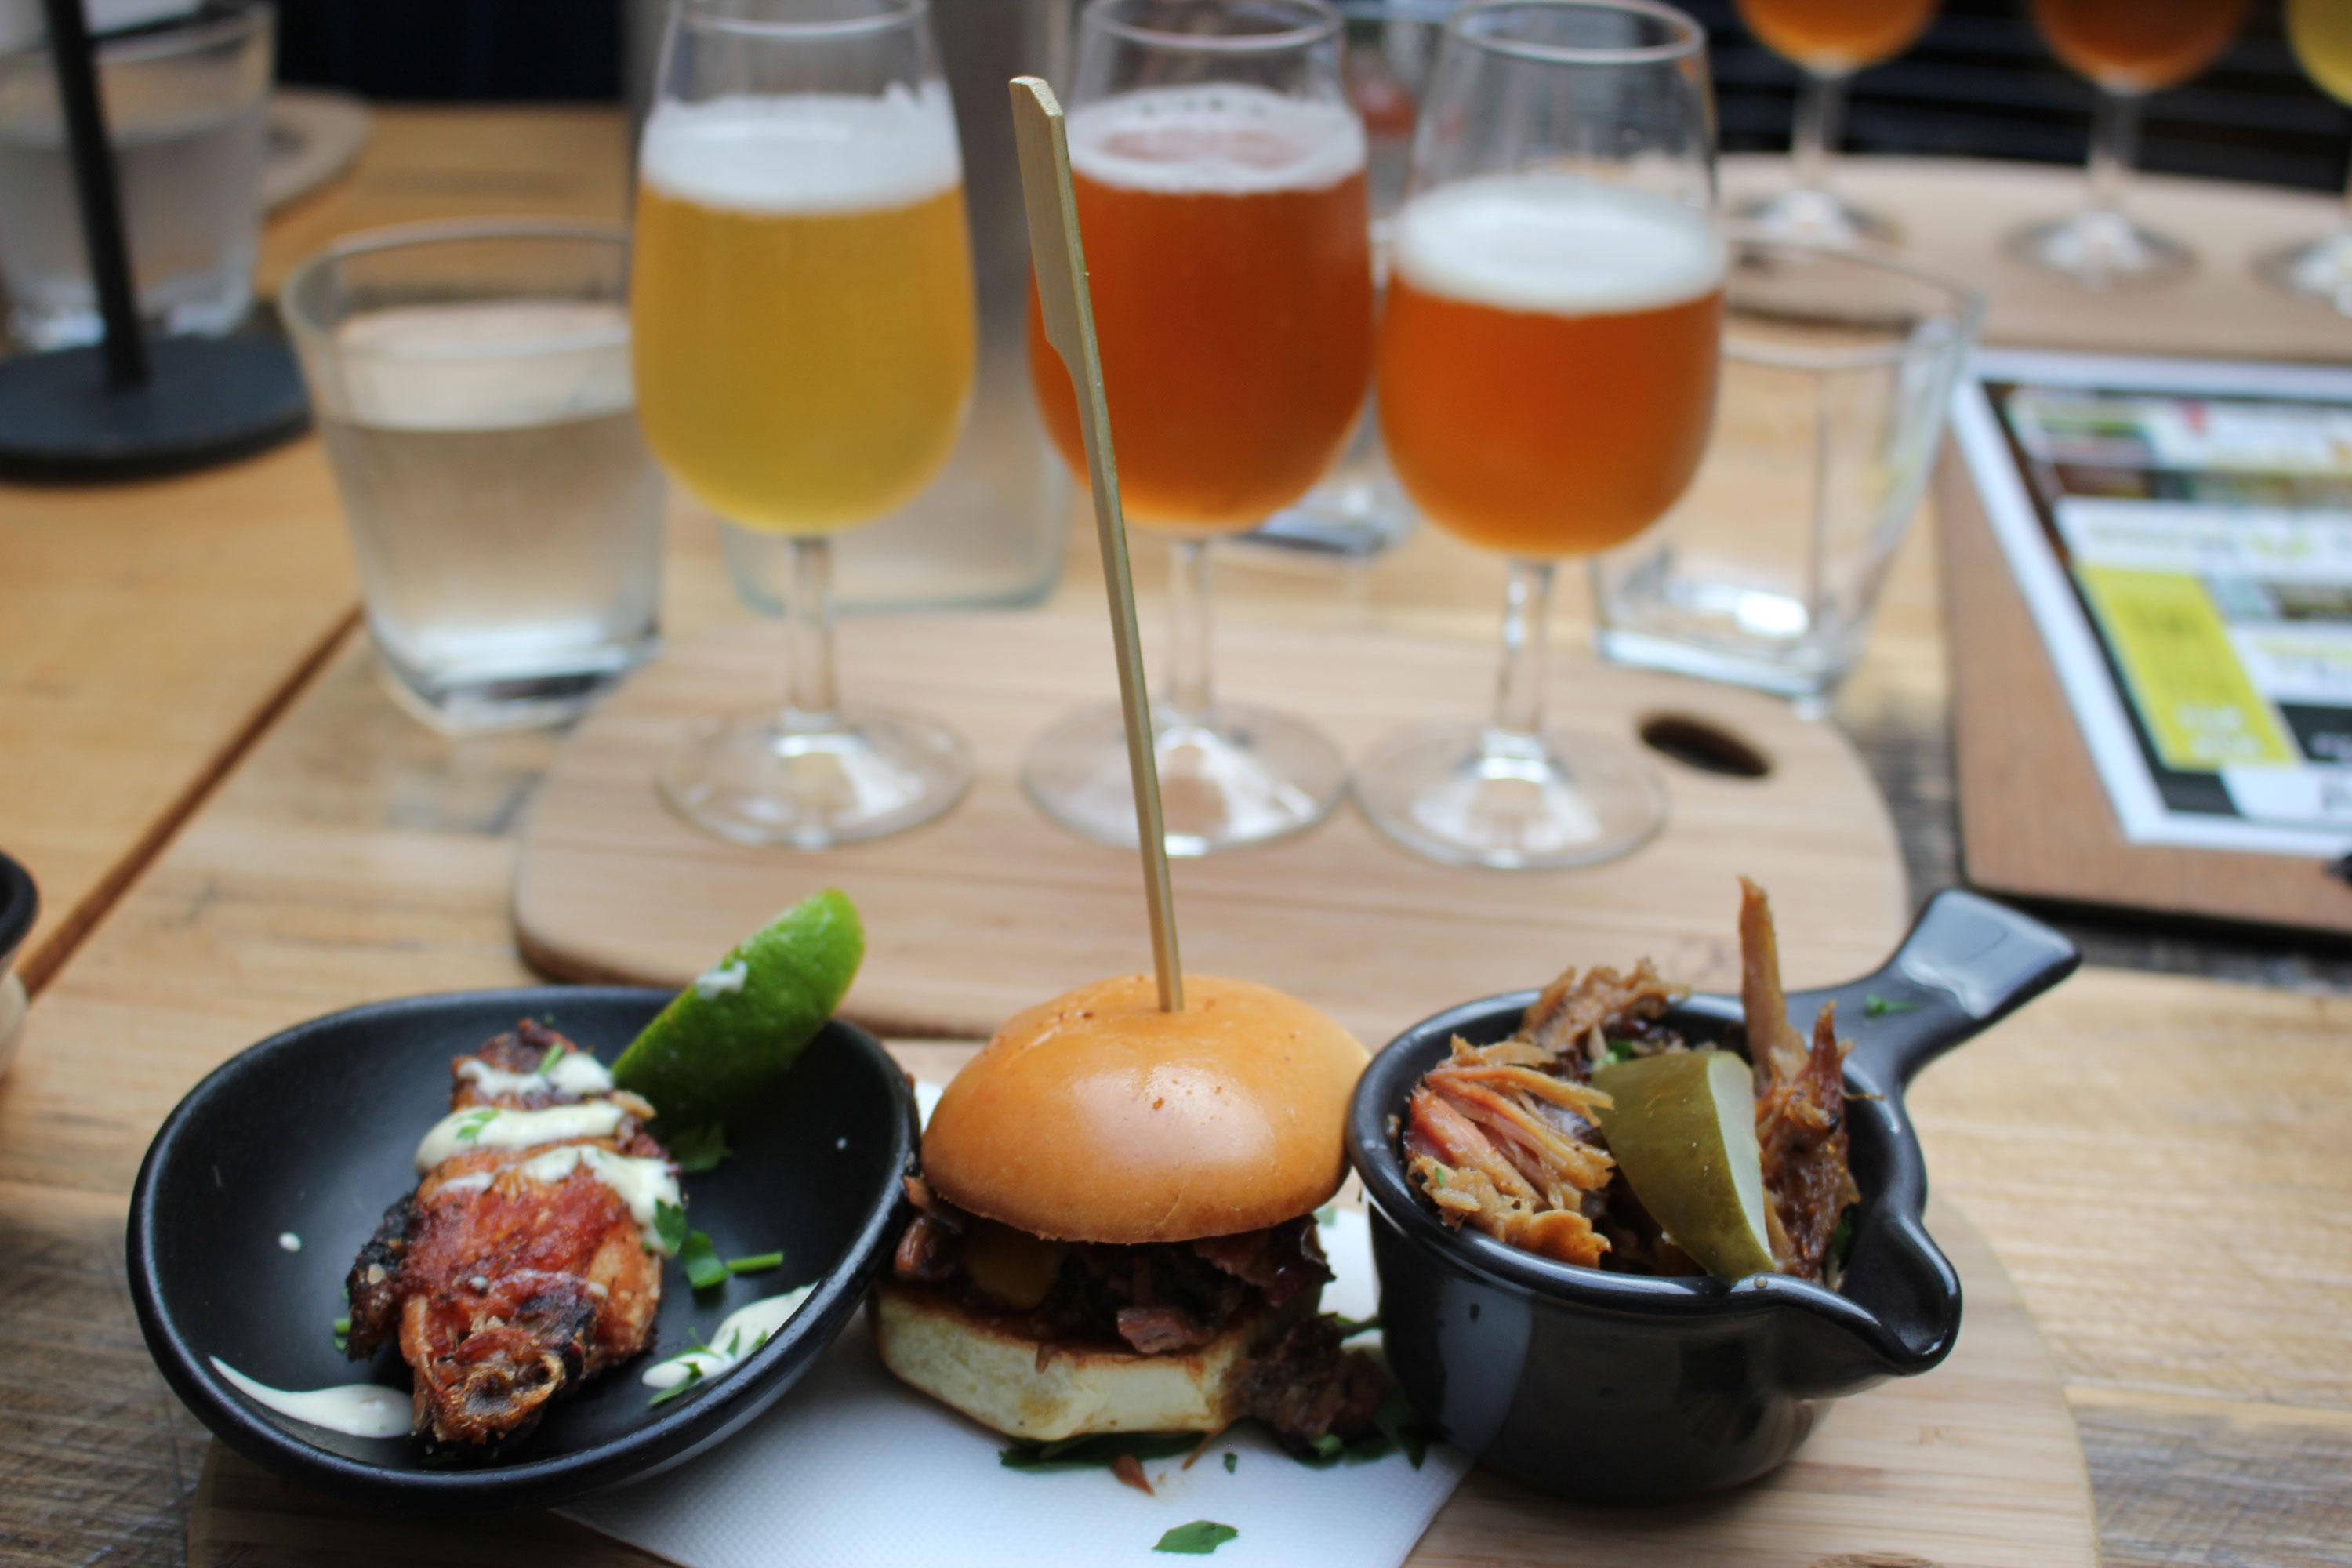 Newcastle Bar Crawl - Beer Tastings and Gourmet Food Pairings